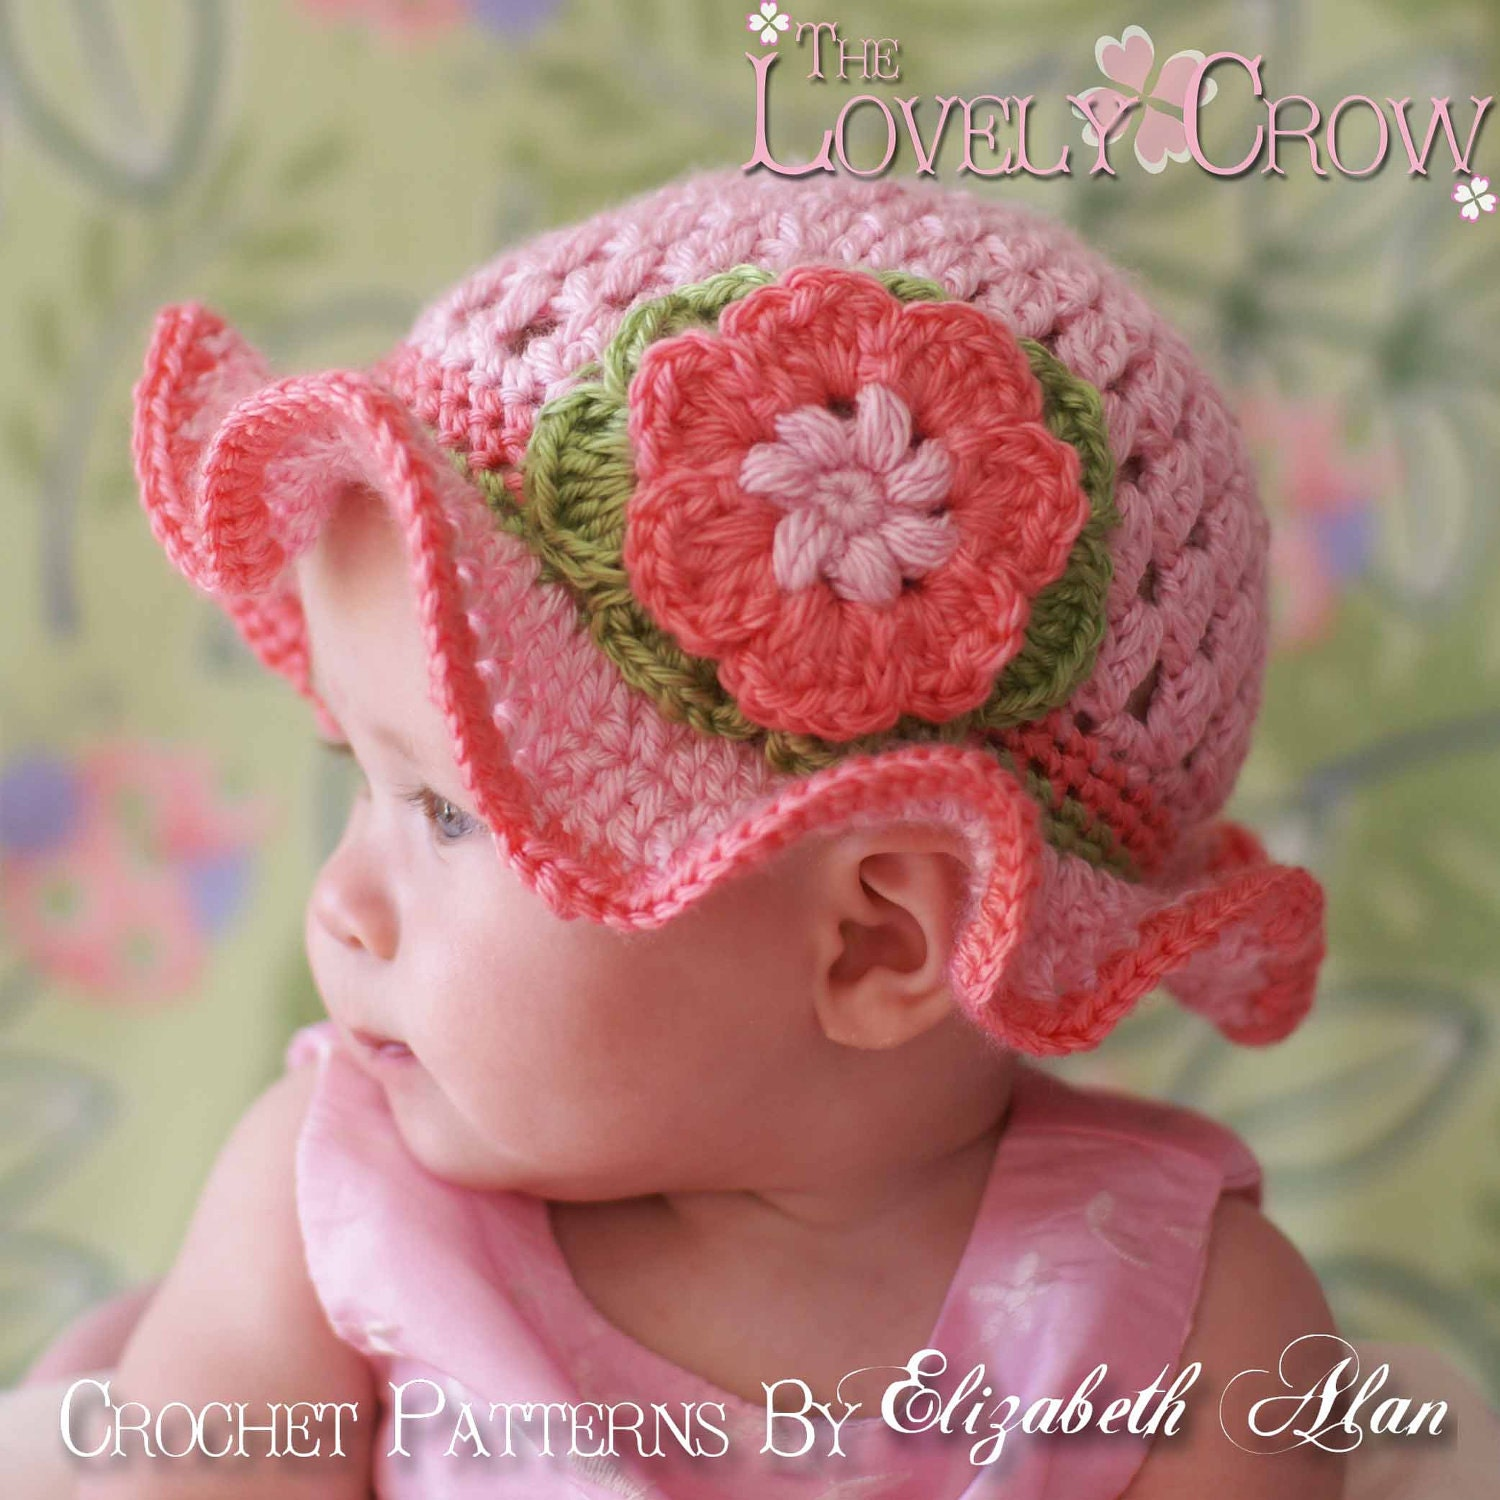 Crochet Patterns Infant Hats : Baby Girl Sun Hat Crochet Pattern for Teaparty Hat by ebethalan